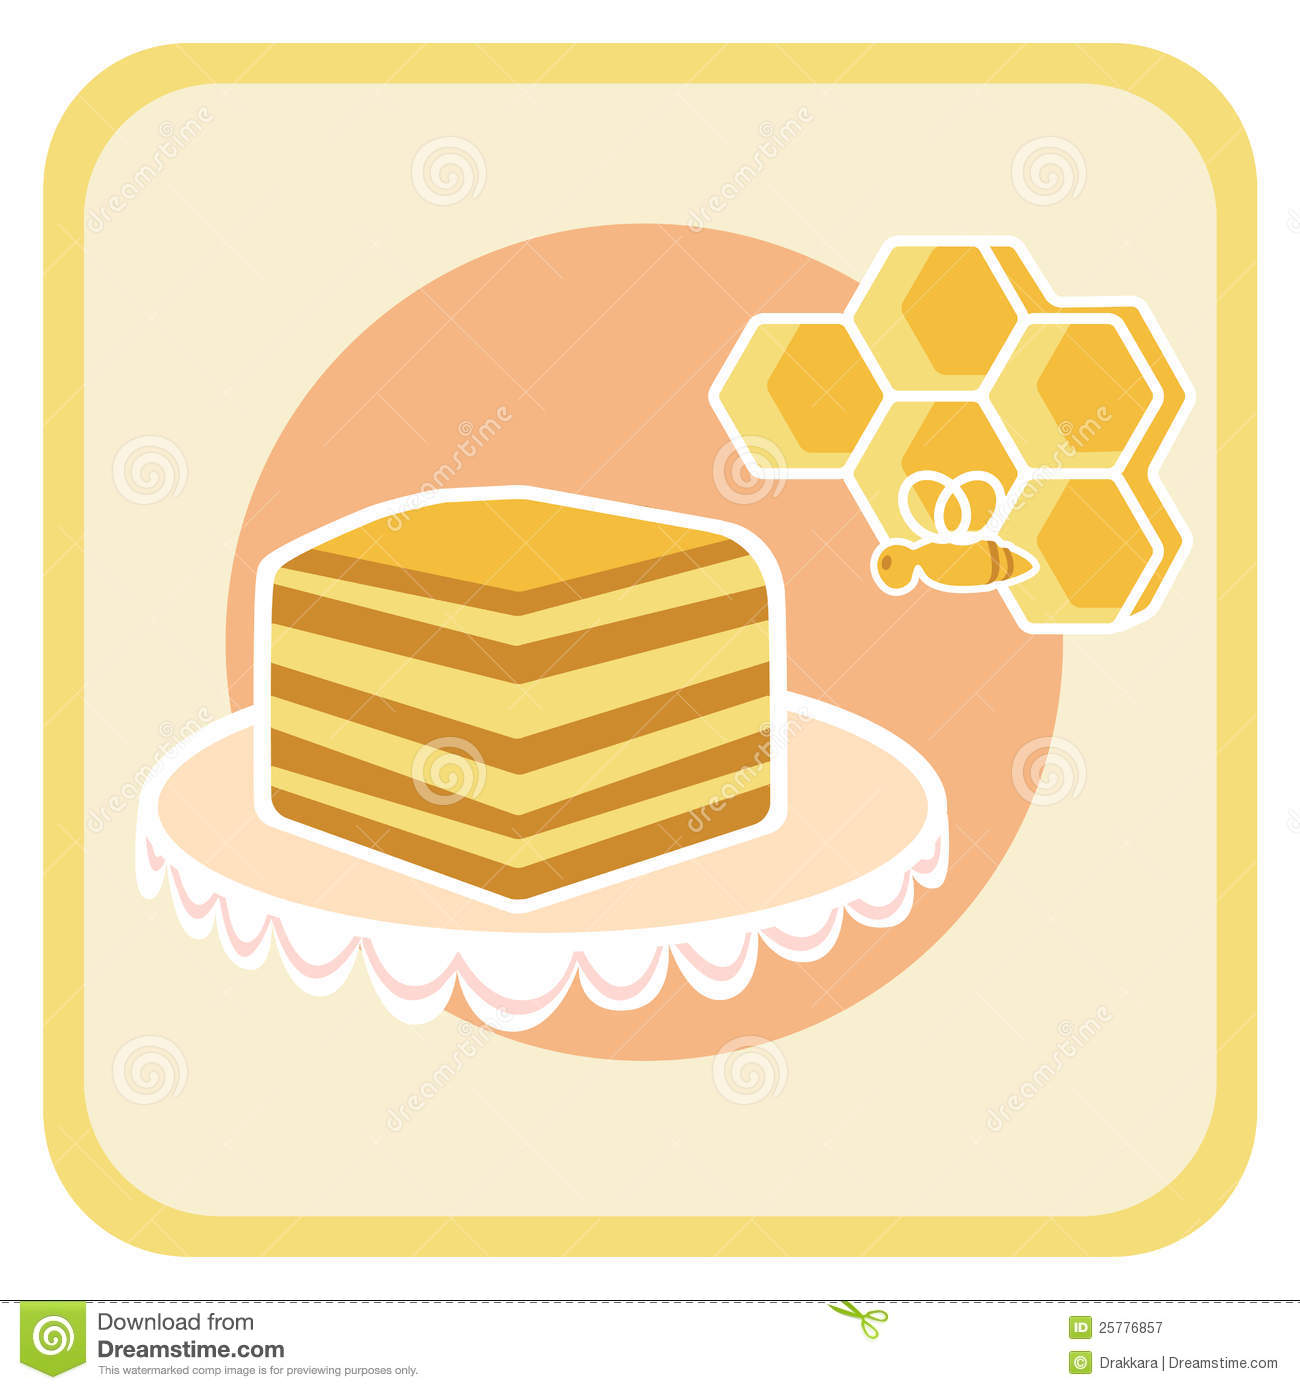 Clipart Of Honey Cake : Piece Of Honey Cake And Bee On Honeycomb Royalty Free ...